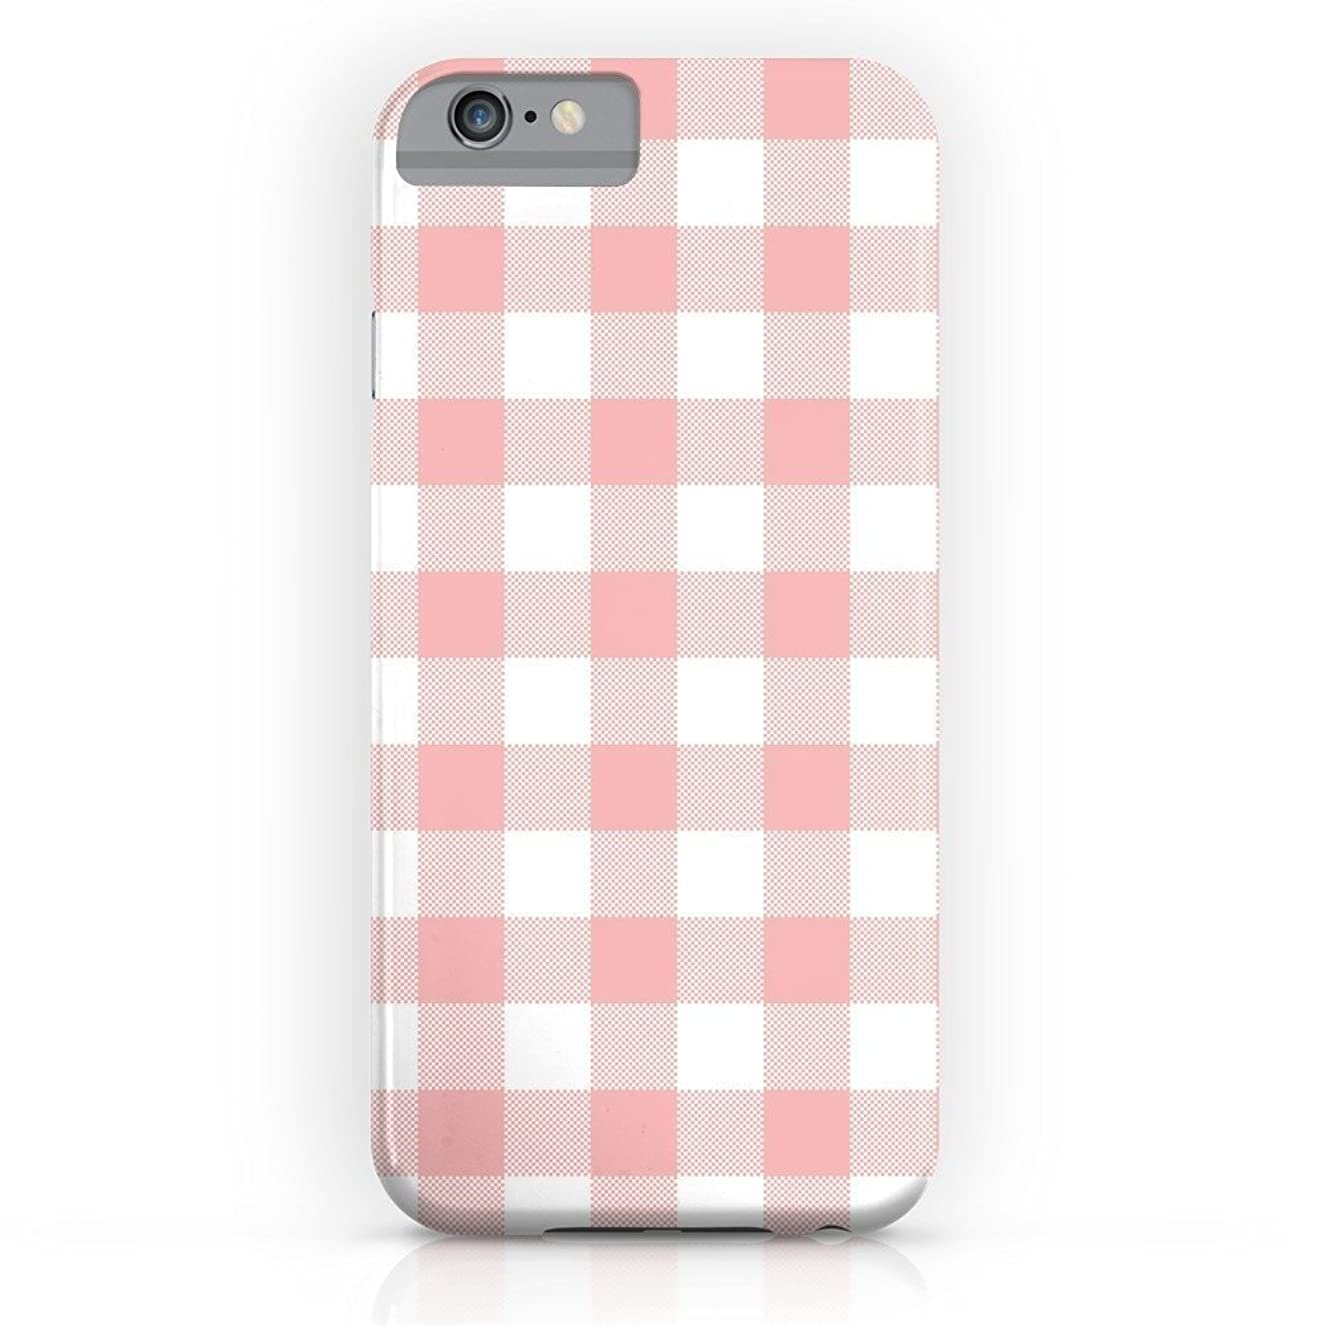 EZON-CH Customize Personalize Smooth Skin Coral Checker Gingham Plaid Waterproof Slim Protective PC Phone Case Cover Phone Protector For Iphone 8 Plus With Tempered Glass Screen Protector